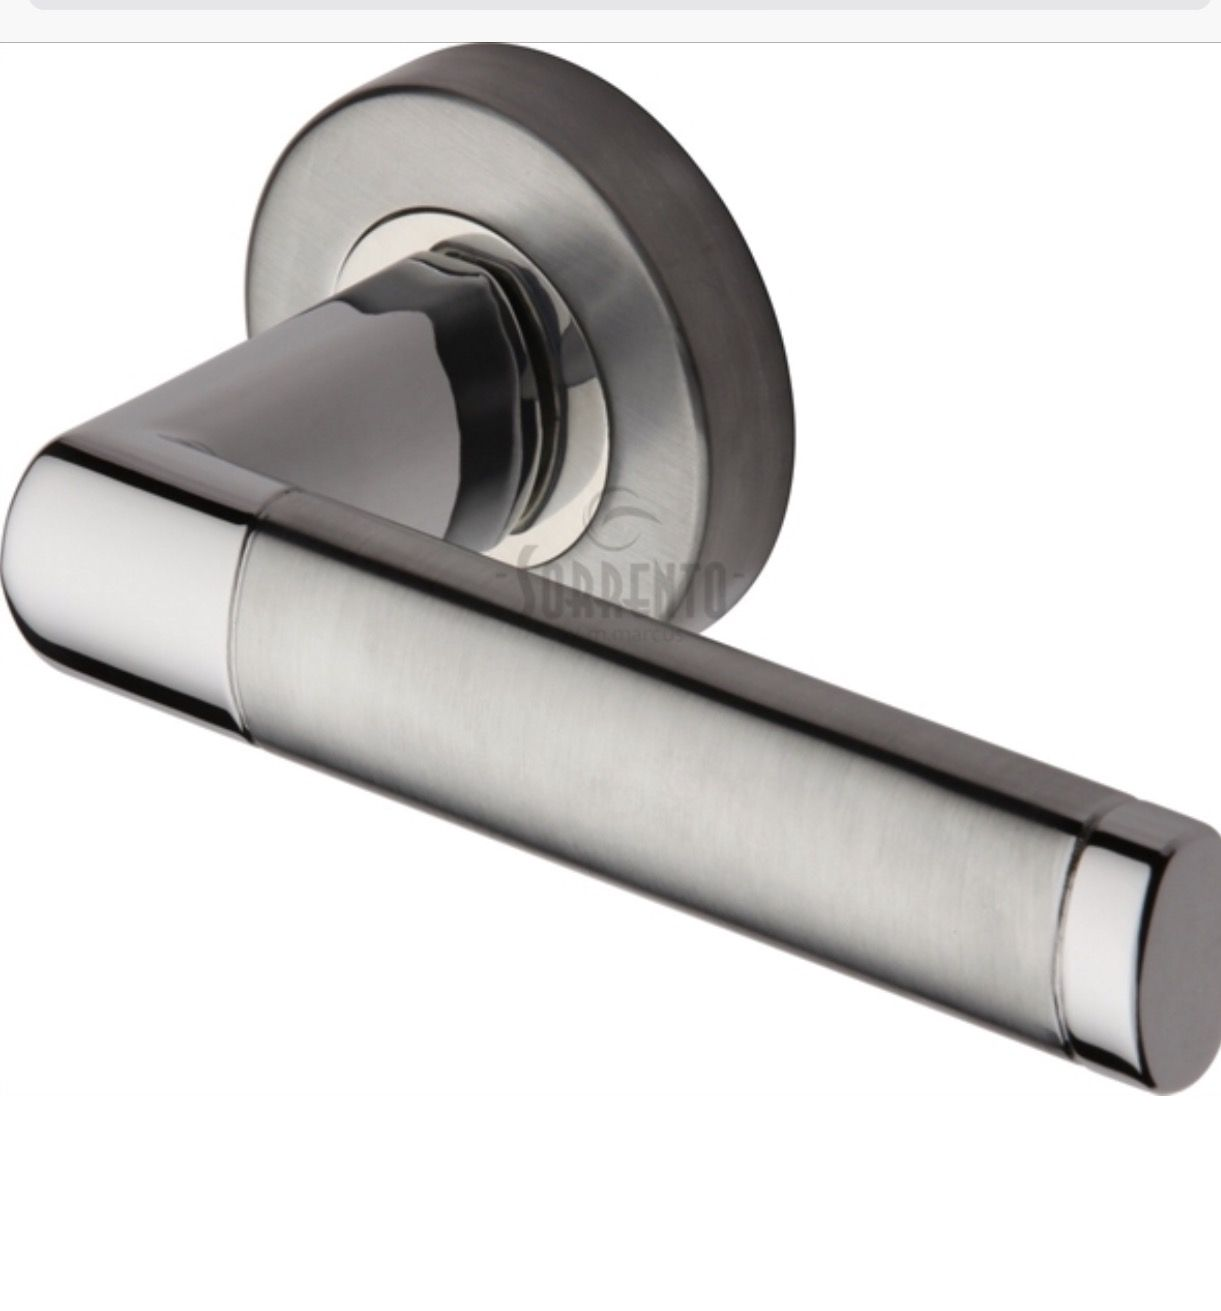 Milan Lever On Rose Door Handle Dimensions 120 X 53 Supplied In Pairs Supplied With Spindle Screws Sorrento Italian Sty Door Handles Fire Doors Lever